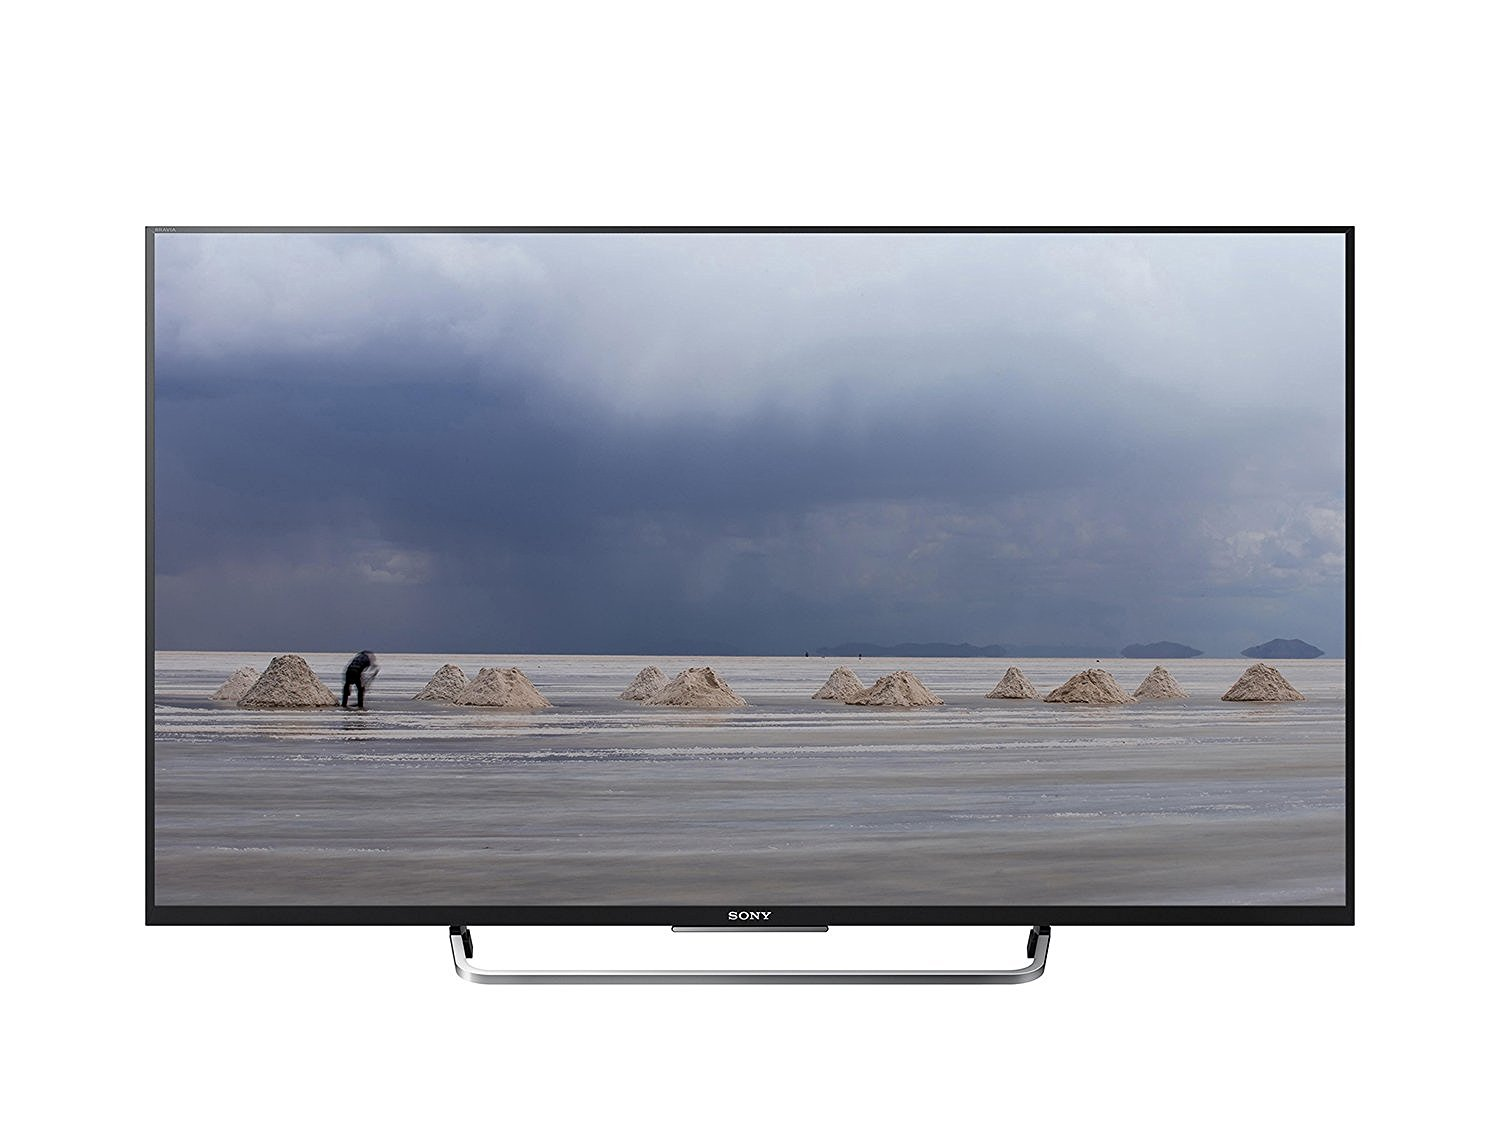 Sony BRAVIA KDL 43W800D Full HD LED TV Image